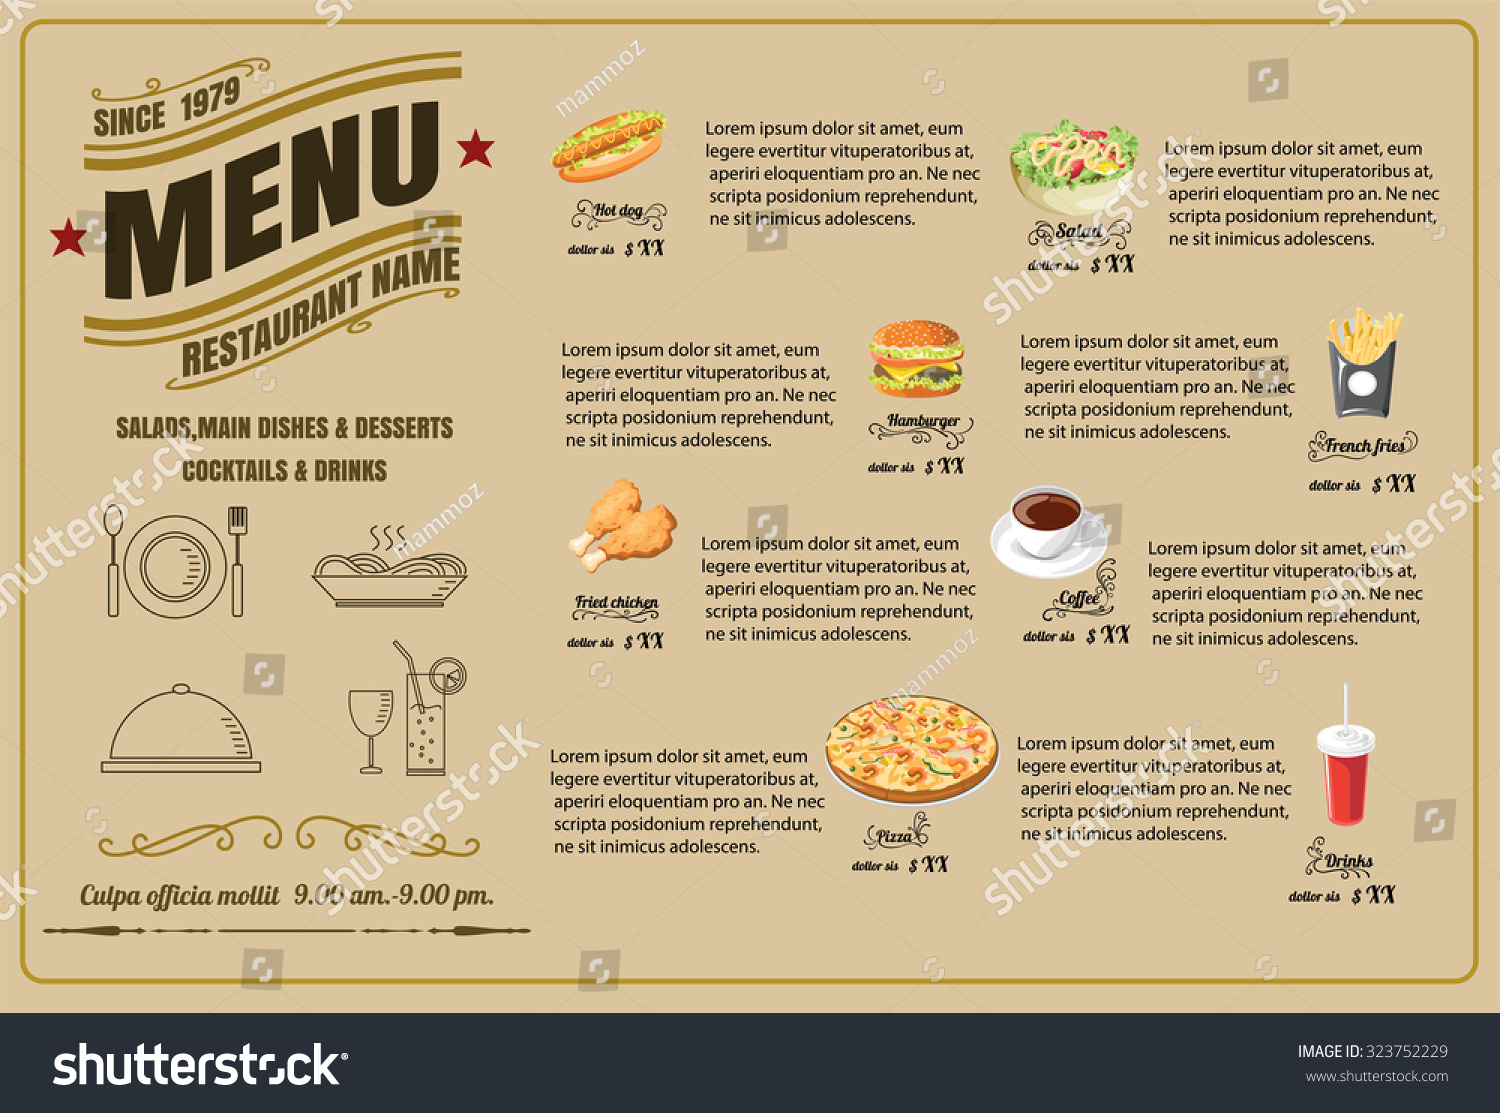 restaurant food menu design vector format のベクター画像素材